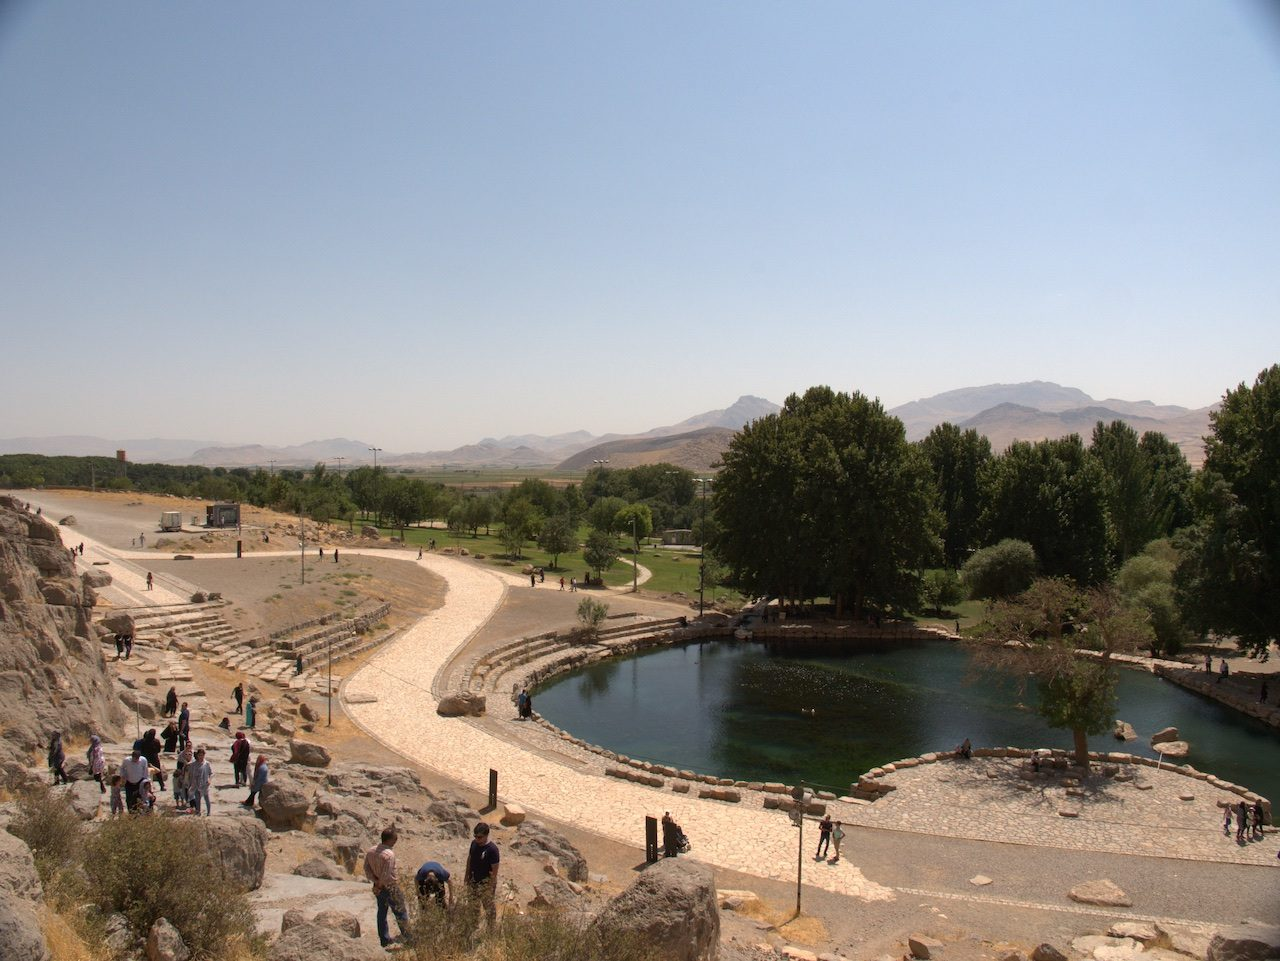 The pool at Bisotun